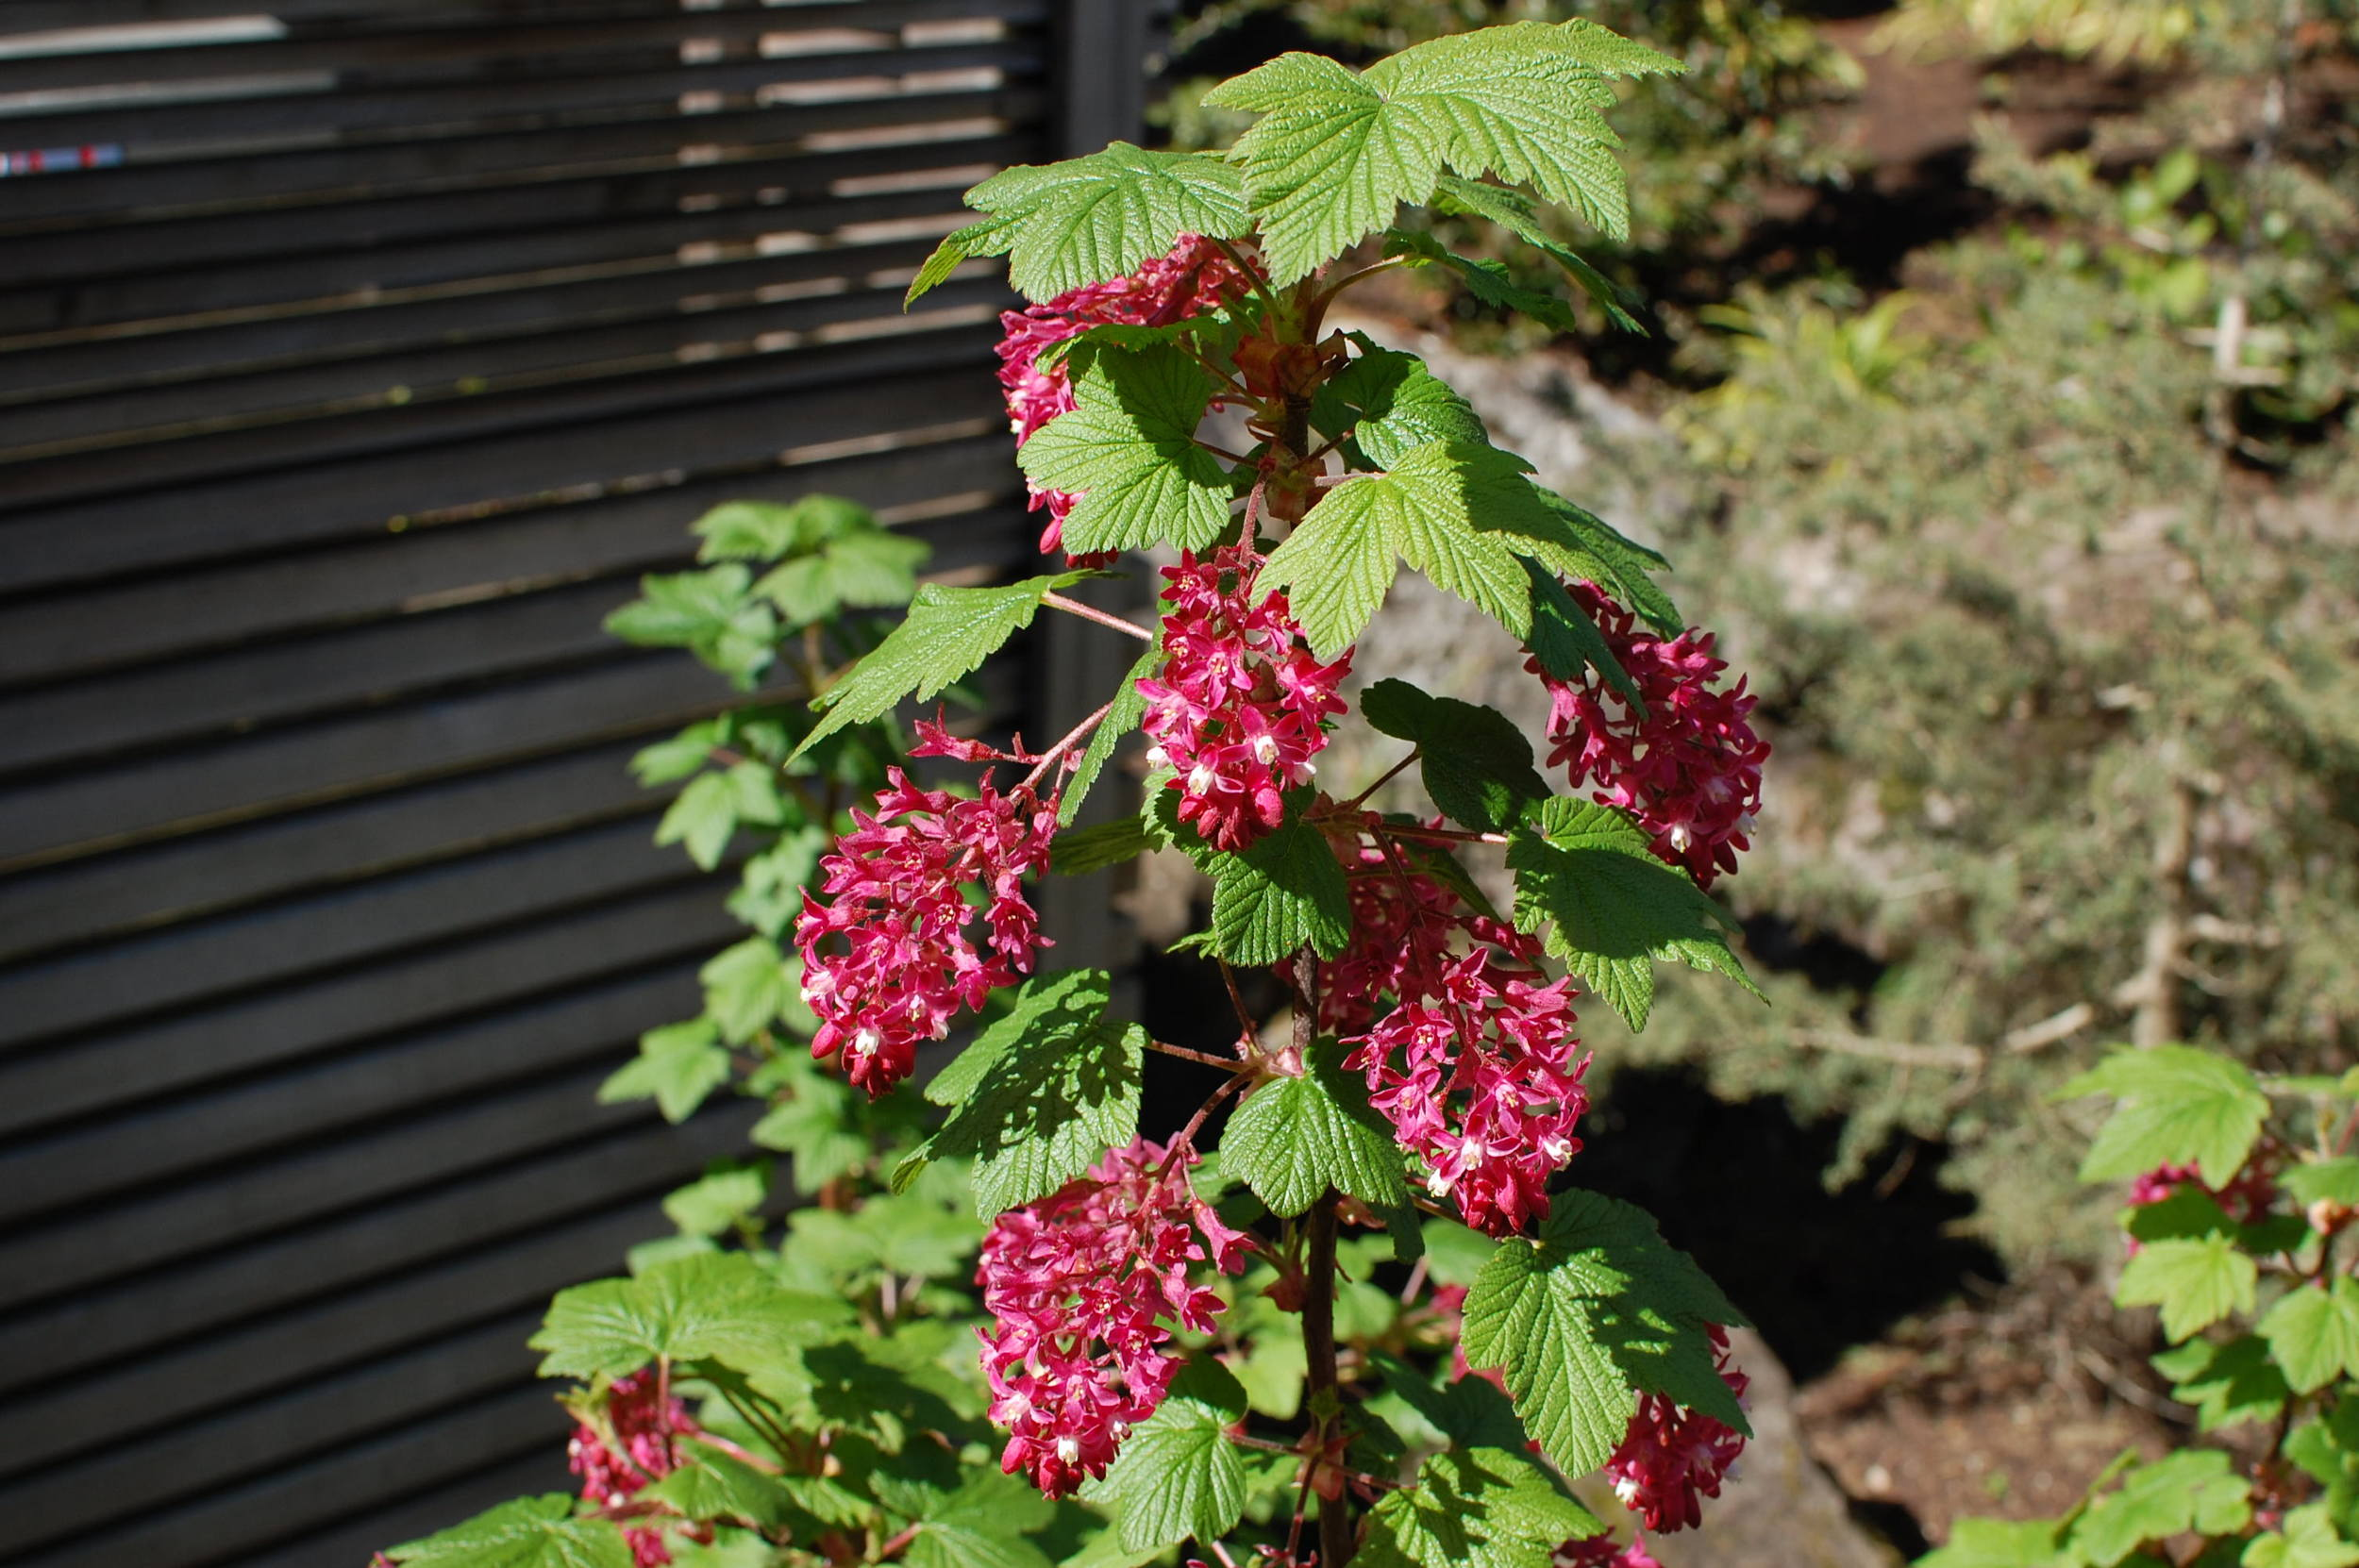 native-currant-flowers.JPG